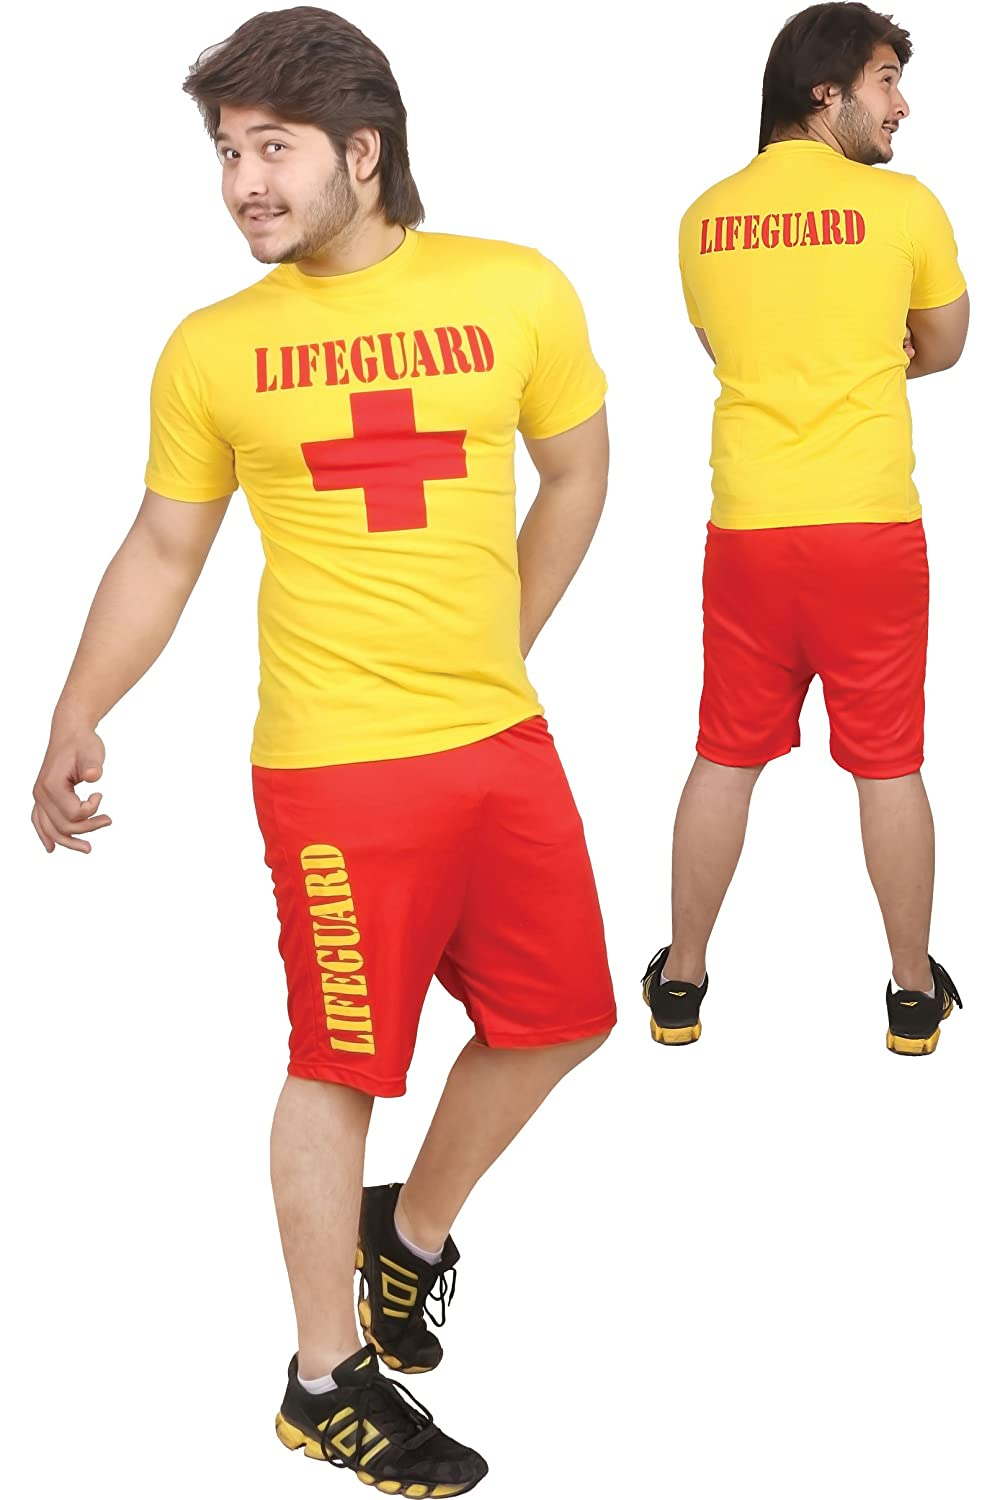 MENS LADIES LIFEGUARD COSTUME BEACH GUARD WEAR EMERGENCY SERVICES SIZE S-XXL (Menu0027s Large) Amazon.co.uk Toys u0026 Games  sc 1 st  Amazon UK & MENS LADIES LIFEGUARD COSTUME BEACH GUARD WEAR EMERGENCY SERVICES ...